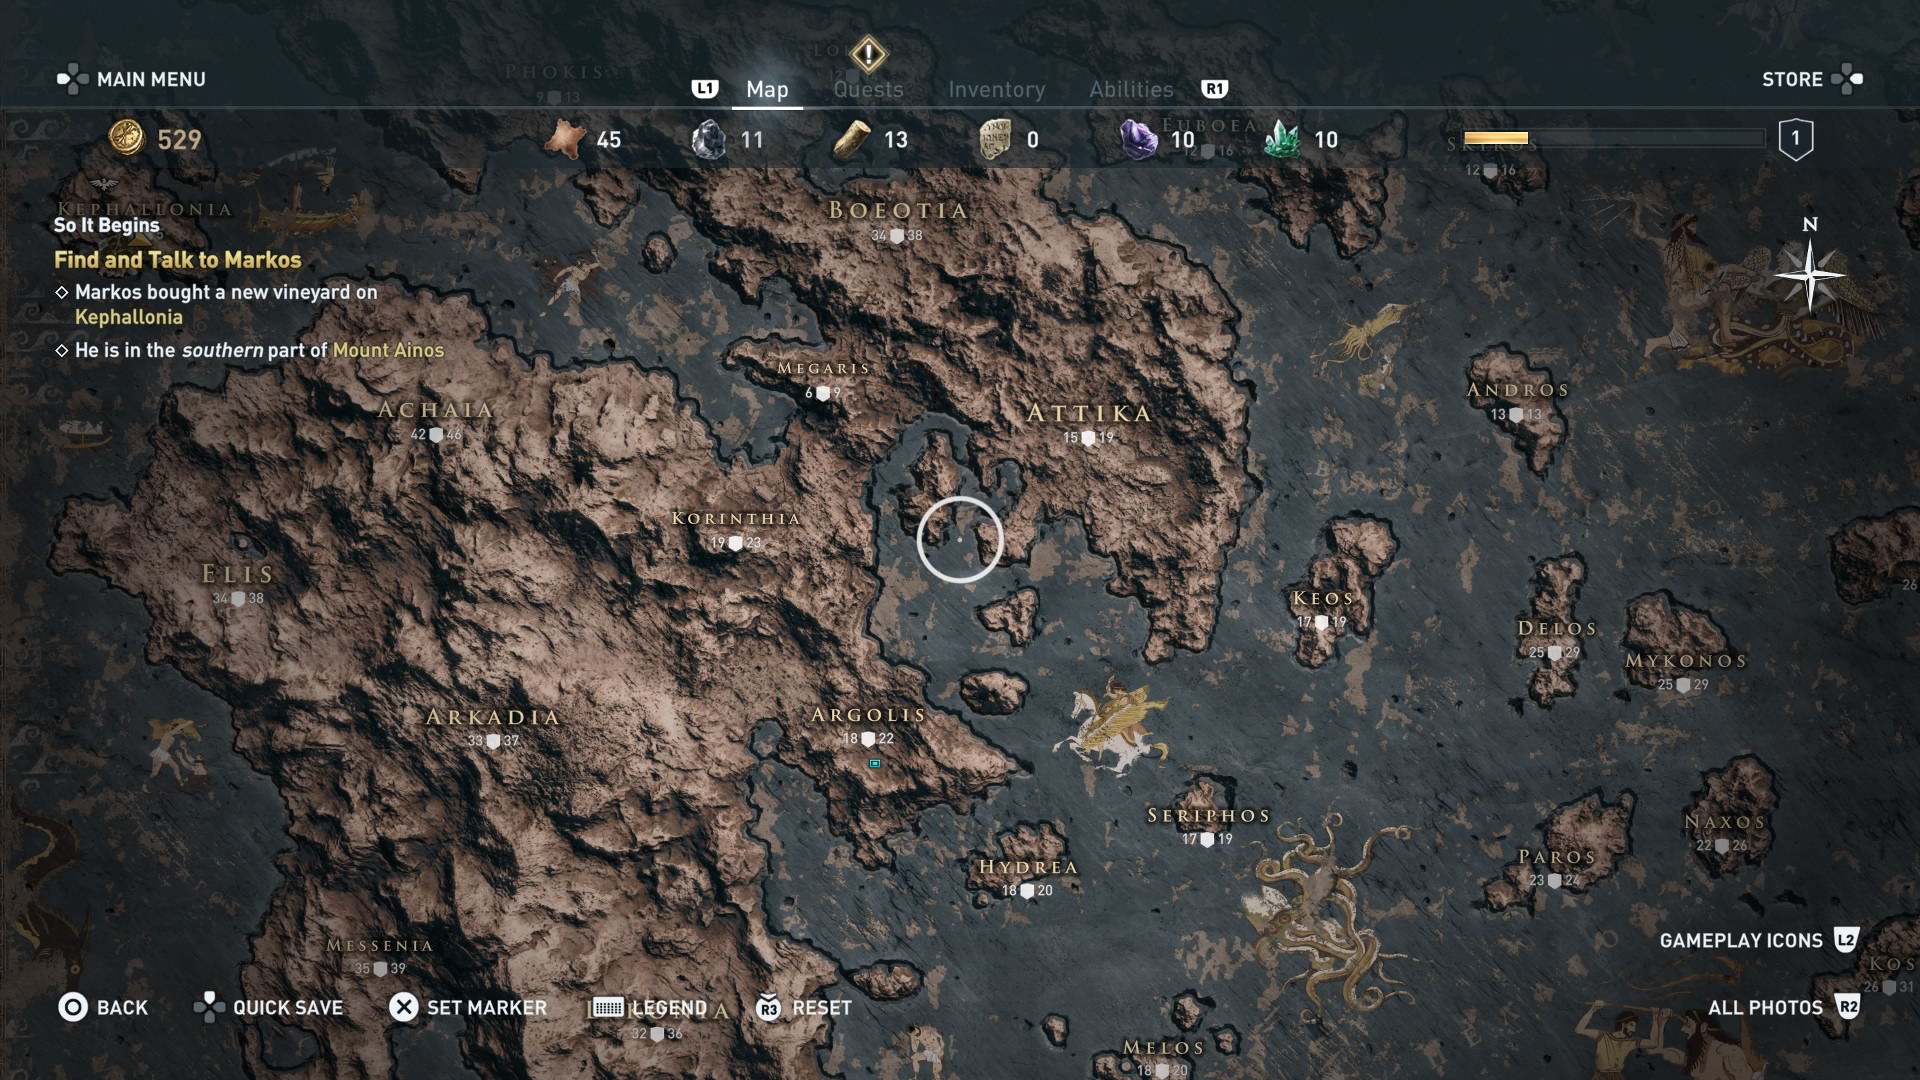 Assassin's Creed Odyssey map